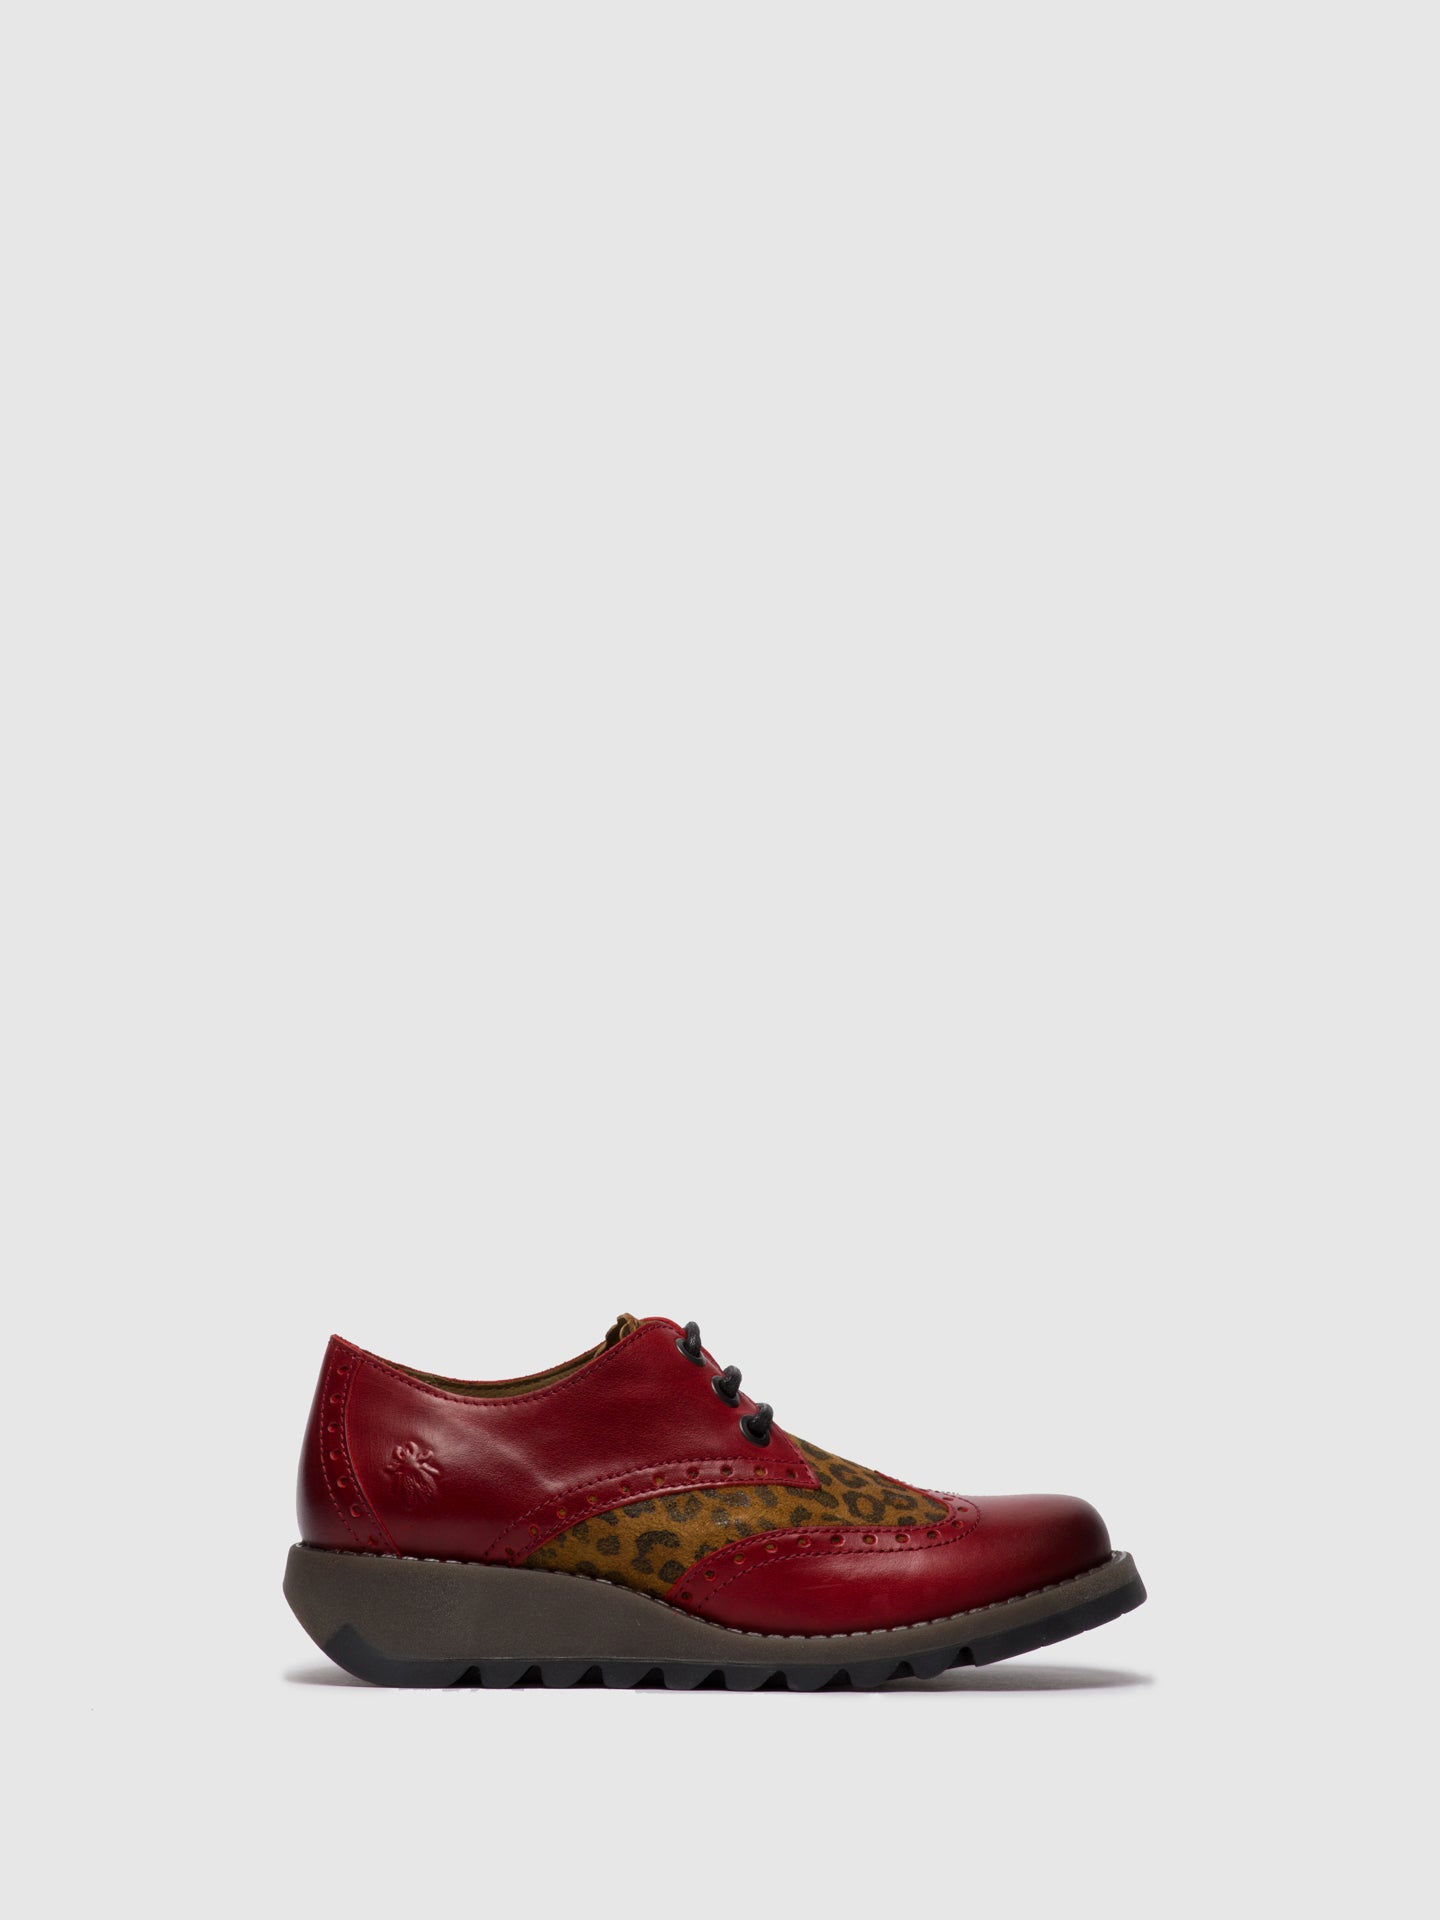 Fly London Sapatos Oxford SUME524FLY RUG/CHEETAH RED/TAN